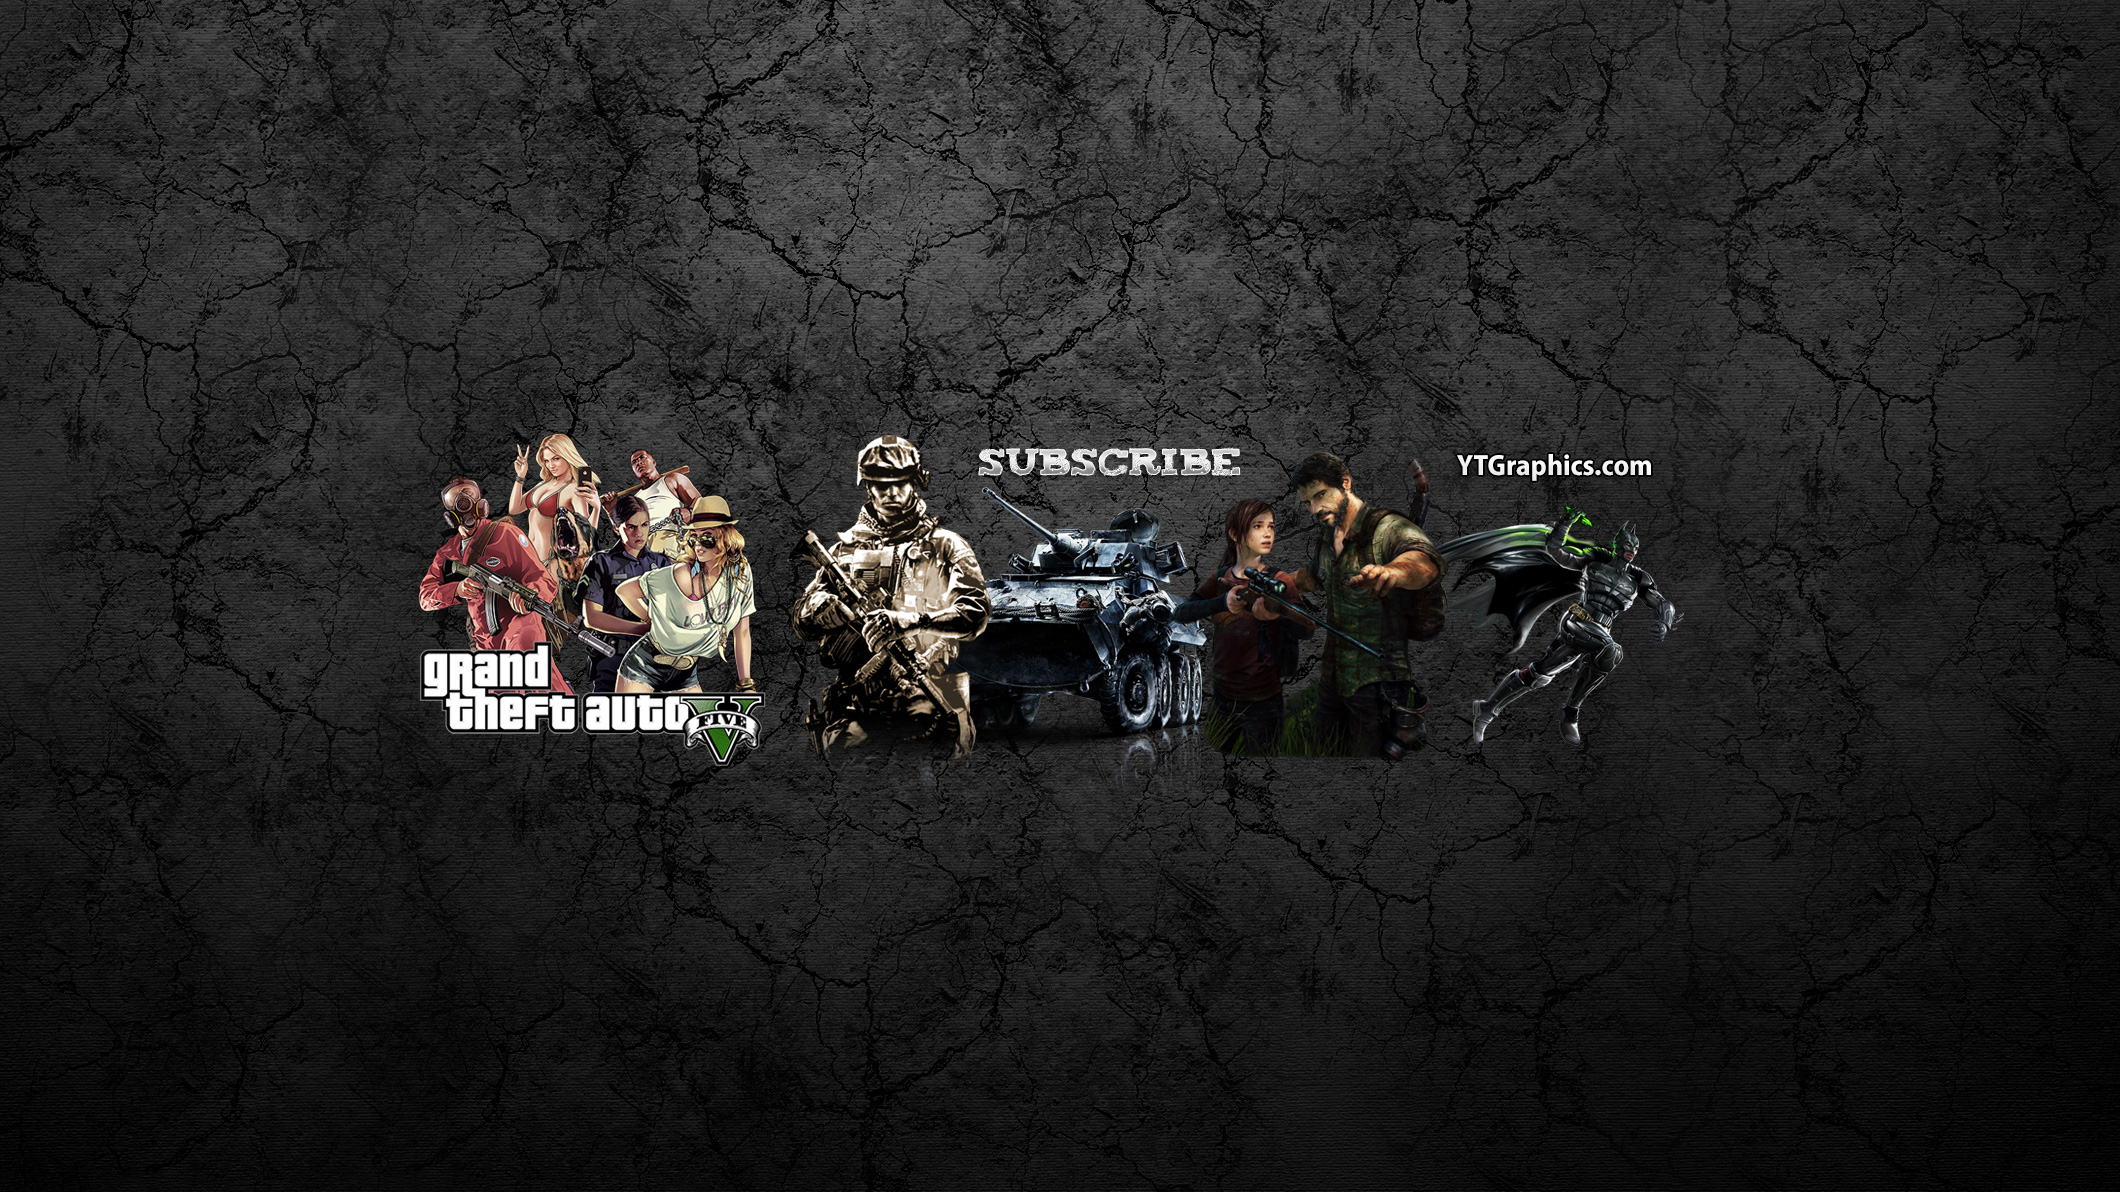 Latest Game Releases October 2013 Youtube Channel Art Banner